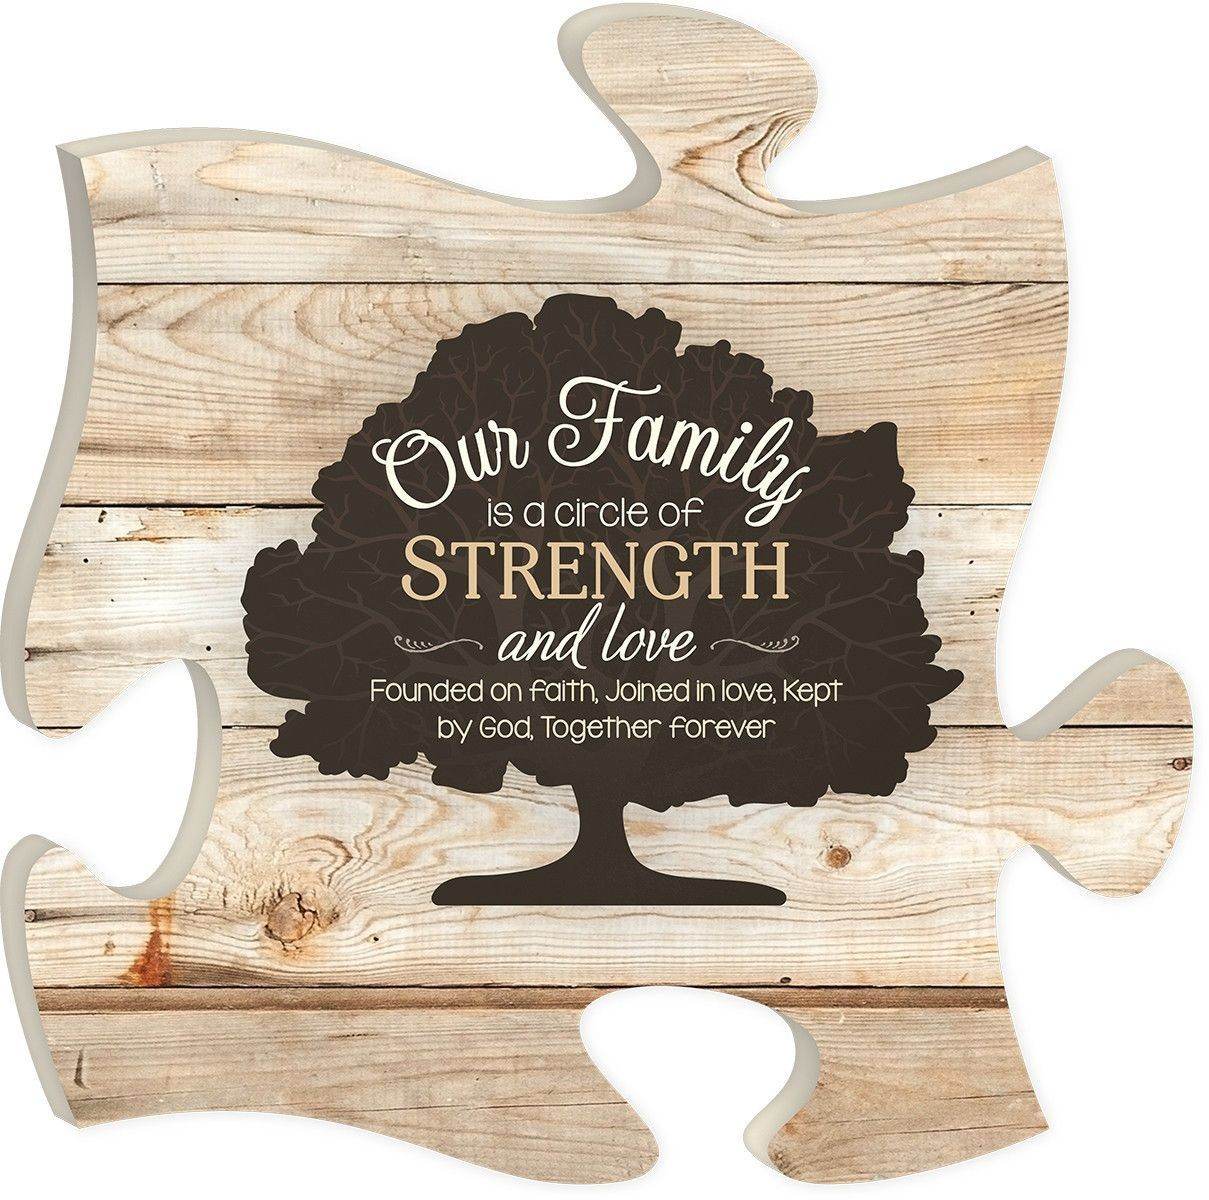 Christian Wall Art Puzzle Piece Quot Our Family Quot Quote